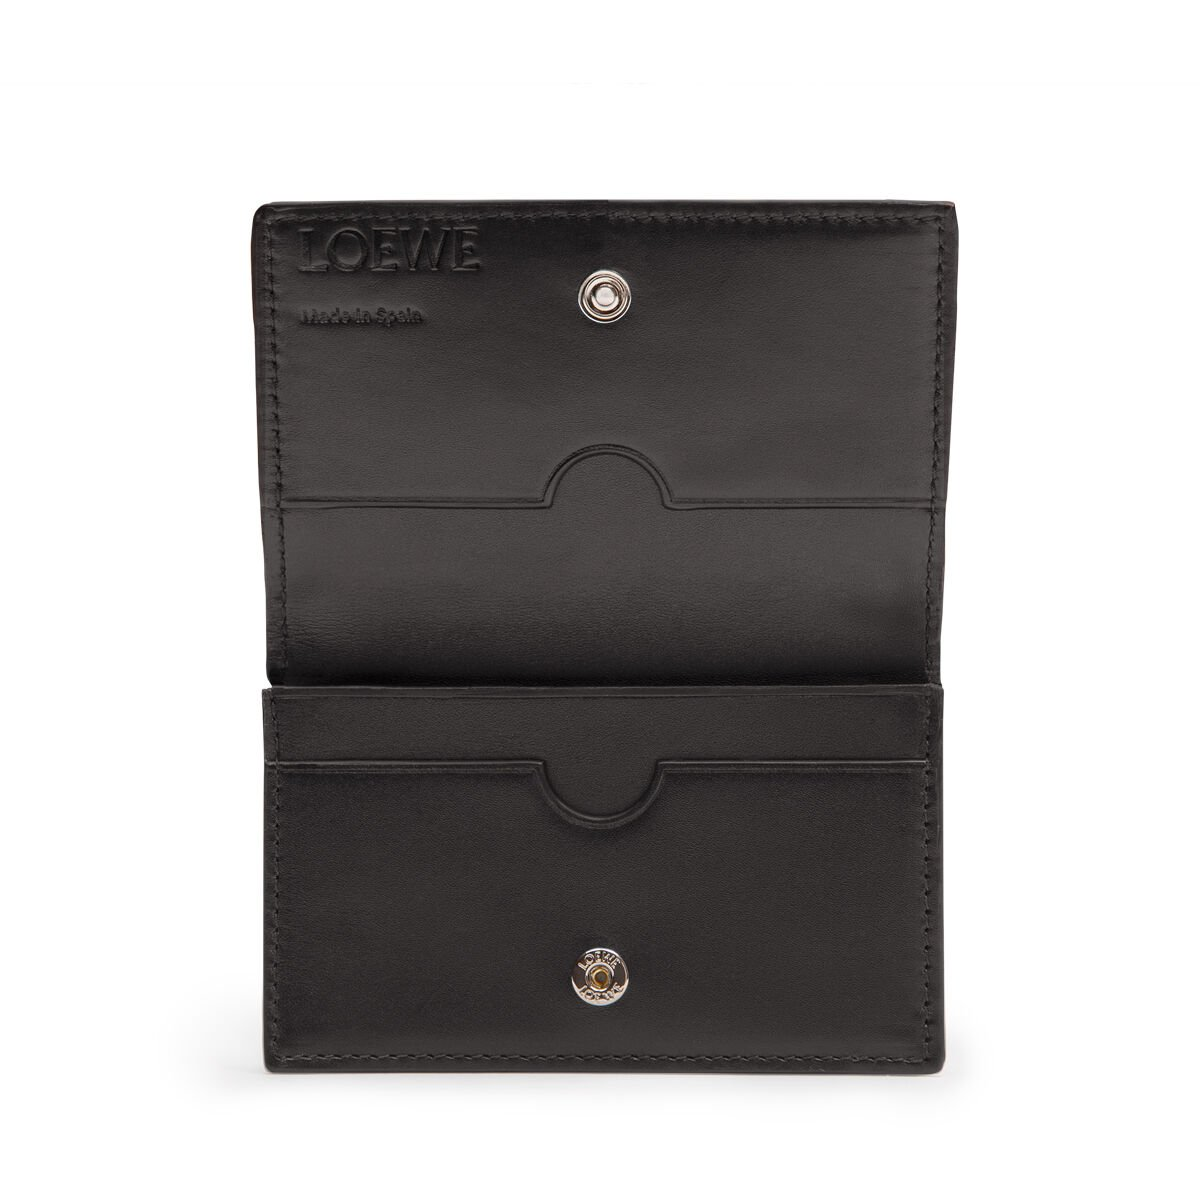 LOEWE Business Card Holder 黑色 all